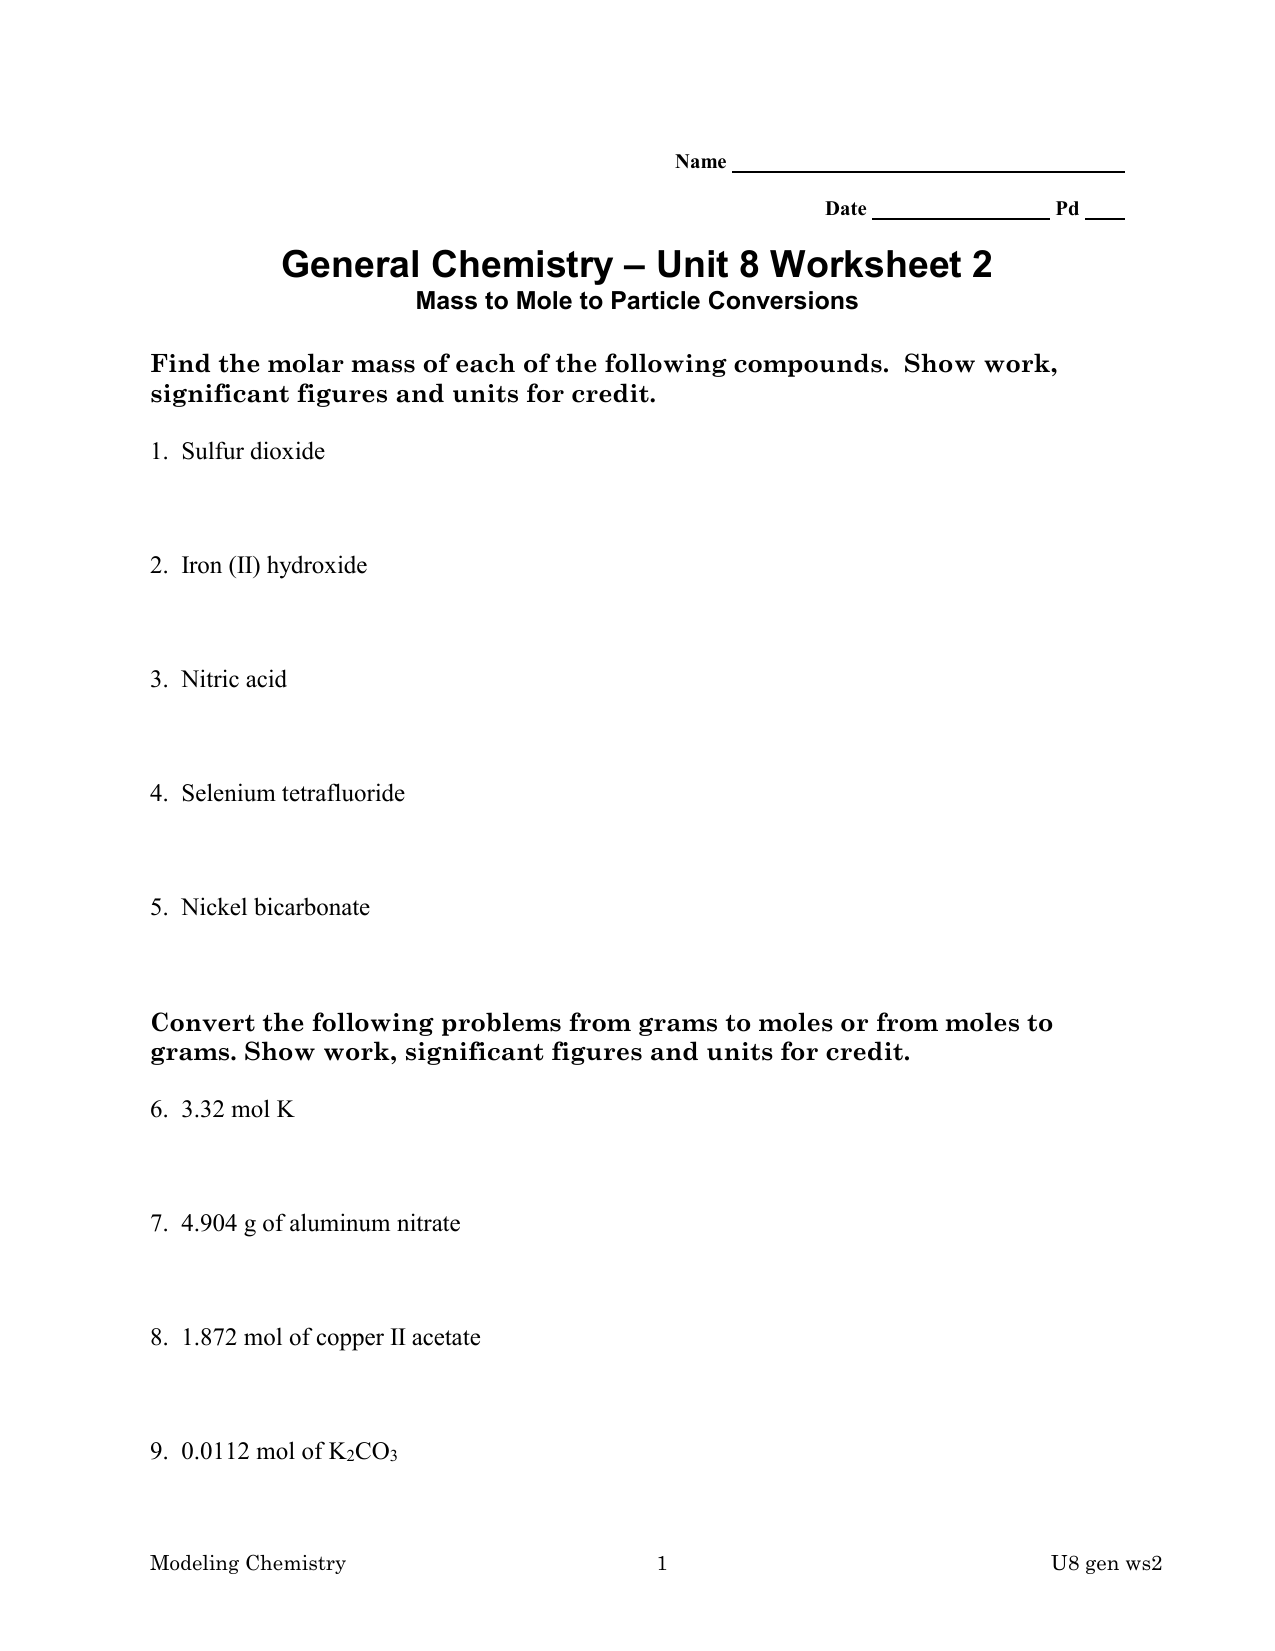 Dale Jensen Ap Chemistry further balancing chemical reactions worksheet – theprivacy co furthermore  additionally Chemistry 12   Mr  Nguyen's Website furthermore Stoichiometry worksheet chemistry unit 8  863303   Worksheets liry likewise worksheet balancing equations 623 answers – vuezcorp besides chem 11 in addition Worksheet 2 together with Westgate Mennonite Collegiate Unit 4  Chemical Equilibrium additionally Abundance Of isotopes Chem Worksheet 4 3   Briefencounters moreover Chemistry   Unit 7 Reaction Equations Worksheet 1 Pages 1   4   Text besides  together with worksheet  Chemistry Unit 8 Worksheet 4  Carlos Lomas Worksheet For moreover Chemistry 12   Mr  Nguyen's Website as well Chemistry Unit 4 Worksheet 4 Answers Unique Unit 7 Worksheet 2 together with 06 balance key balancing equations word prob   Name Pd Date. on chemistry unit 8 worksheet 4